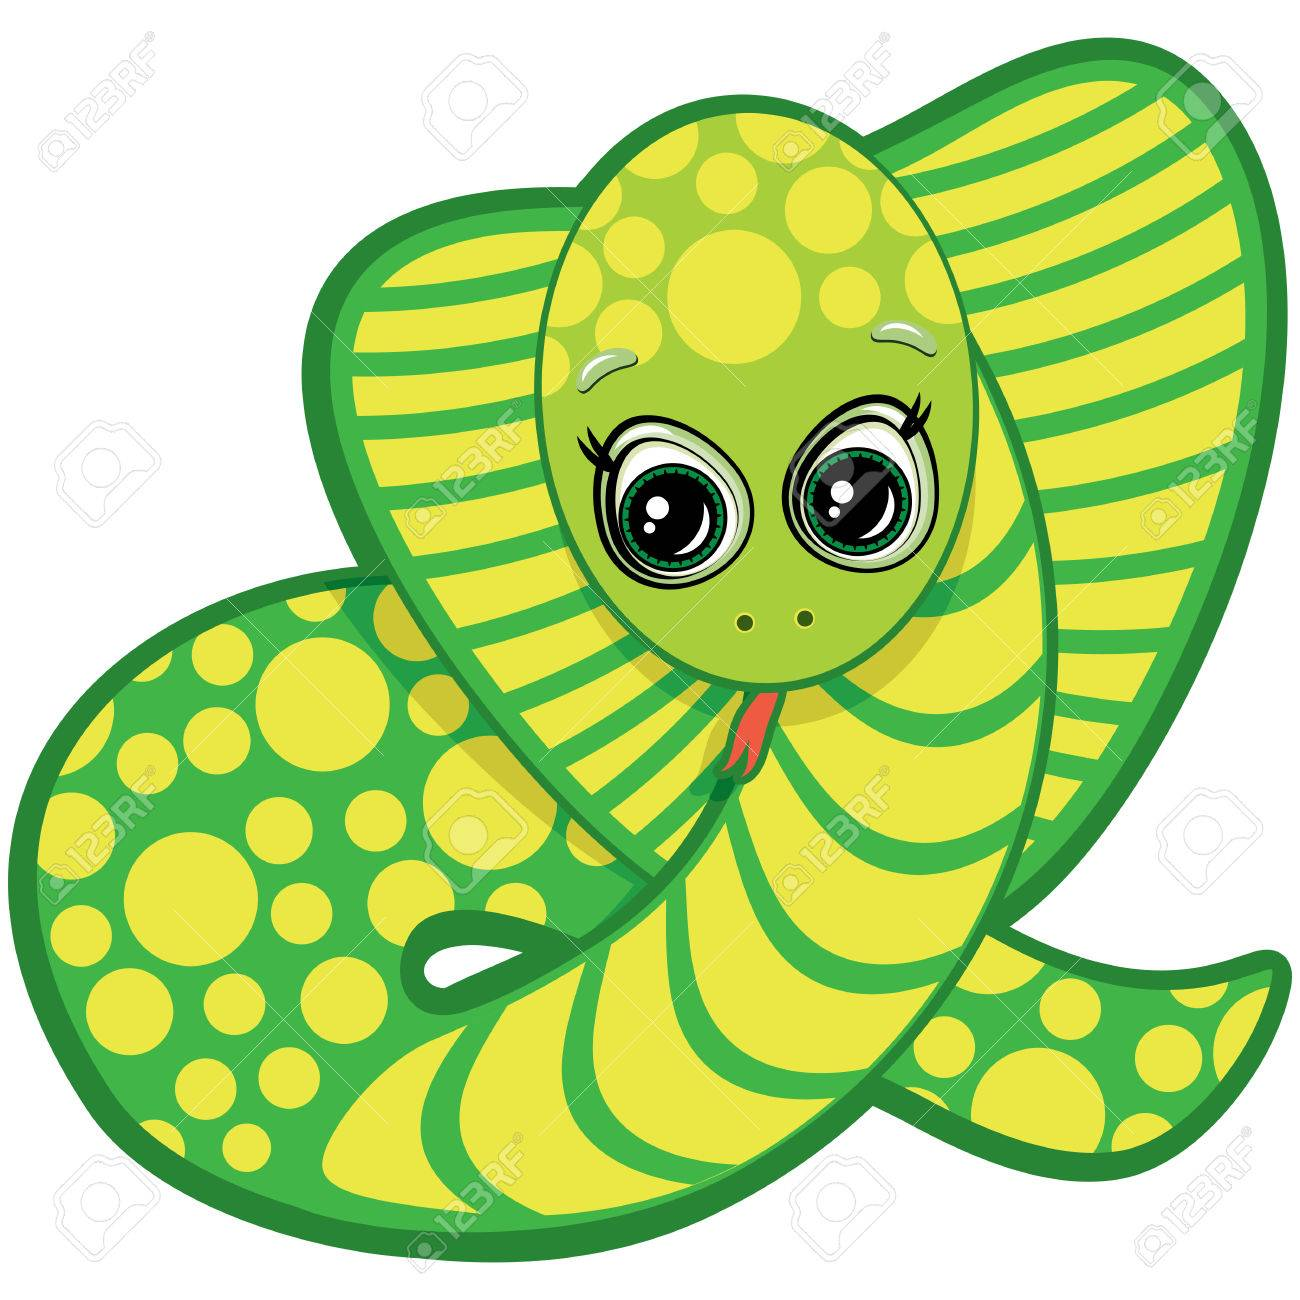 Little Snake - one of the symbols of the Chinese horoscope Stock Vector - 6746357